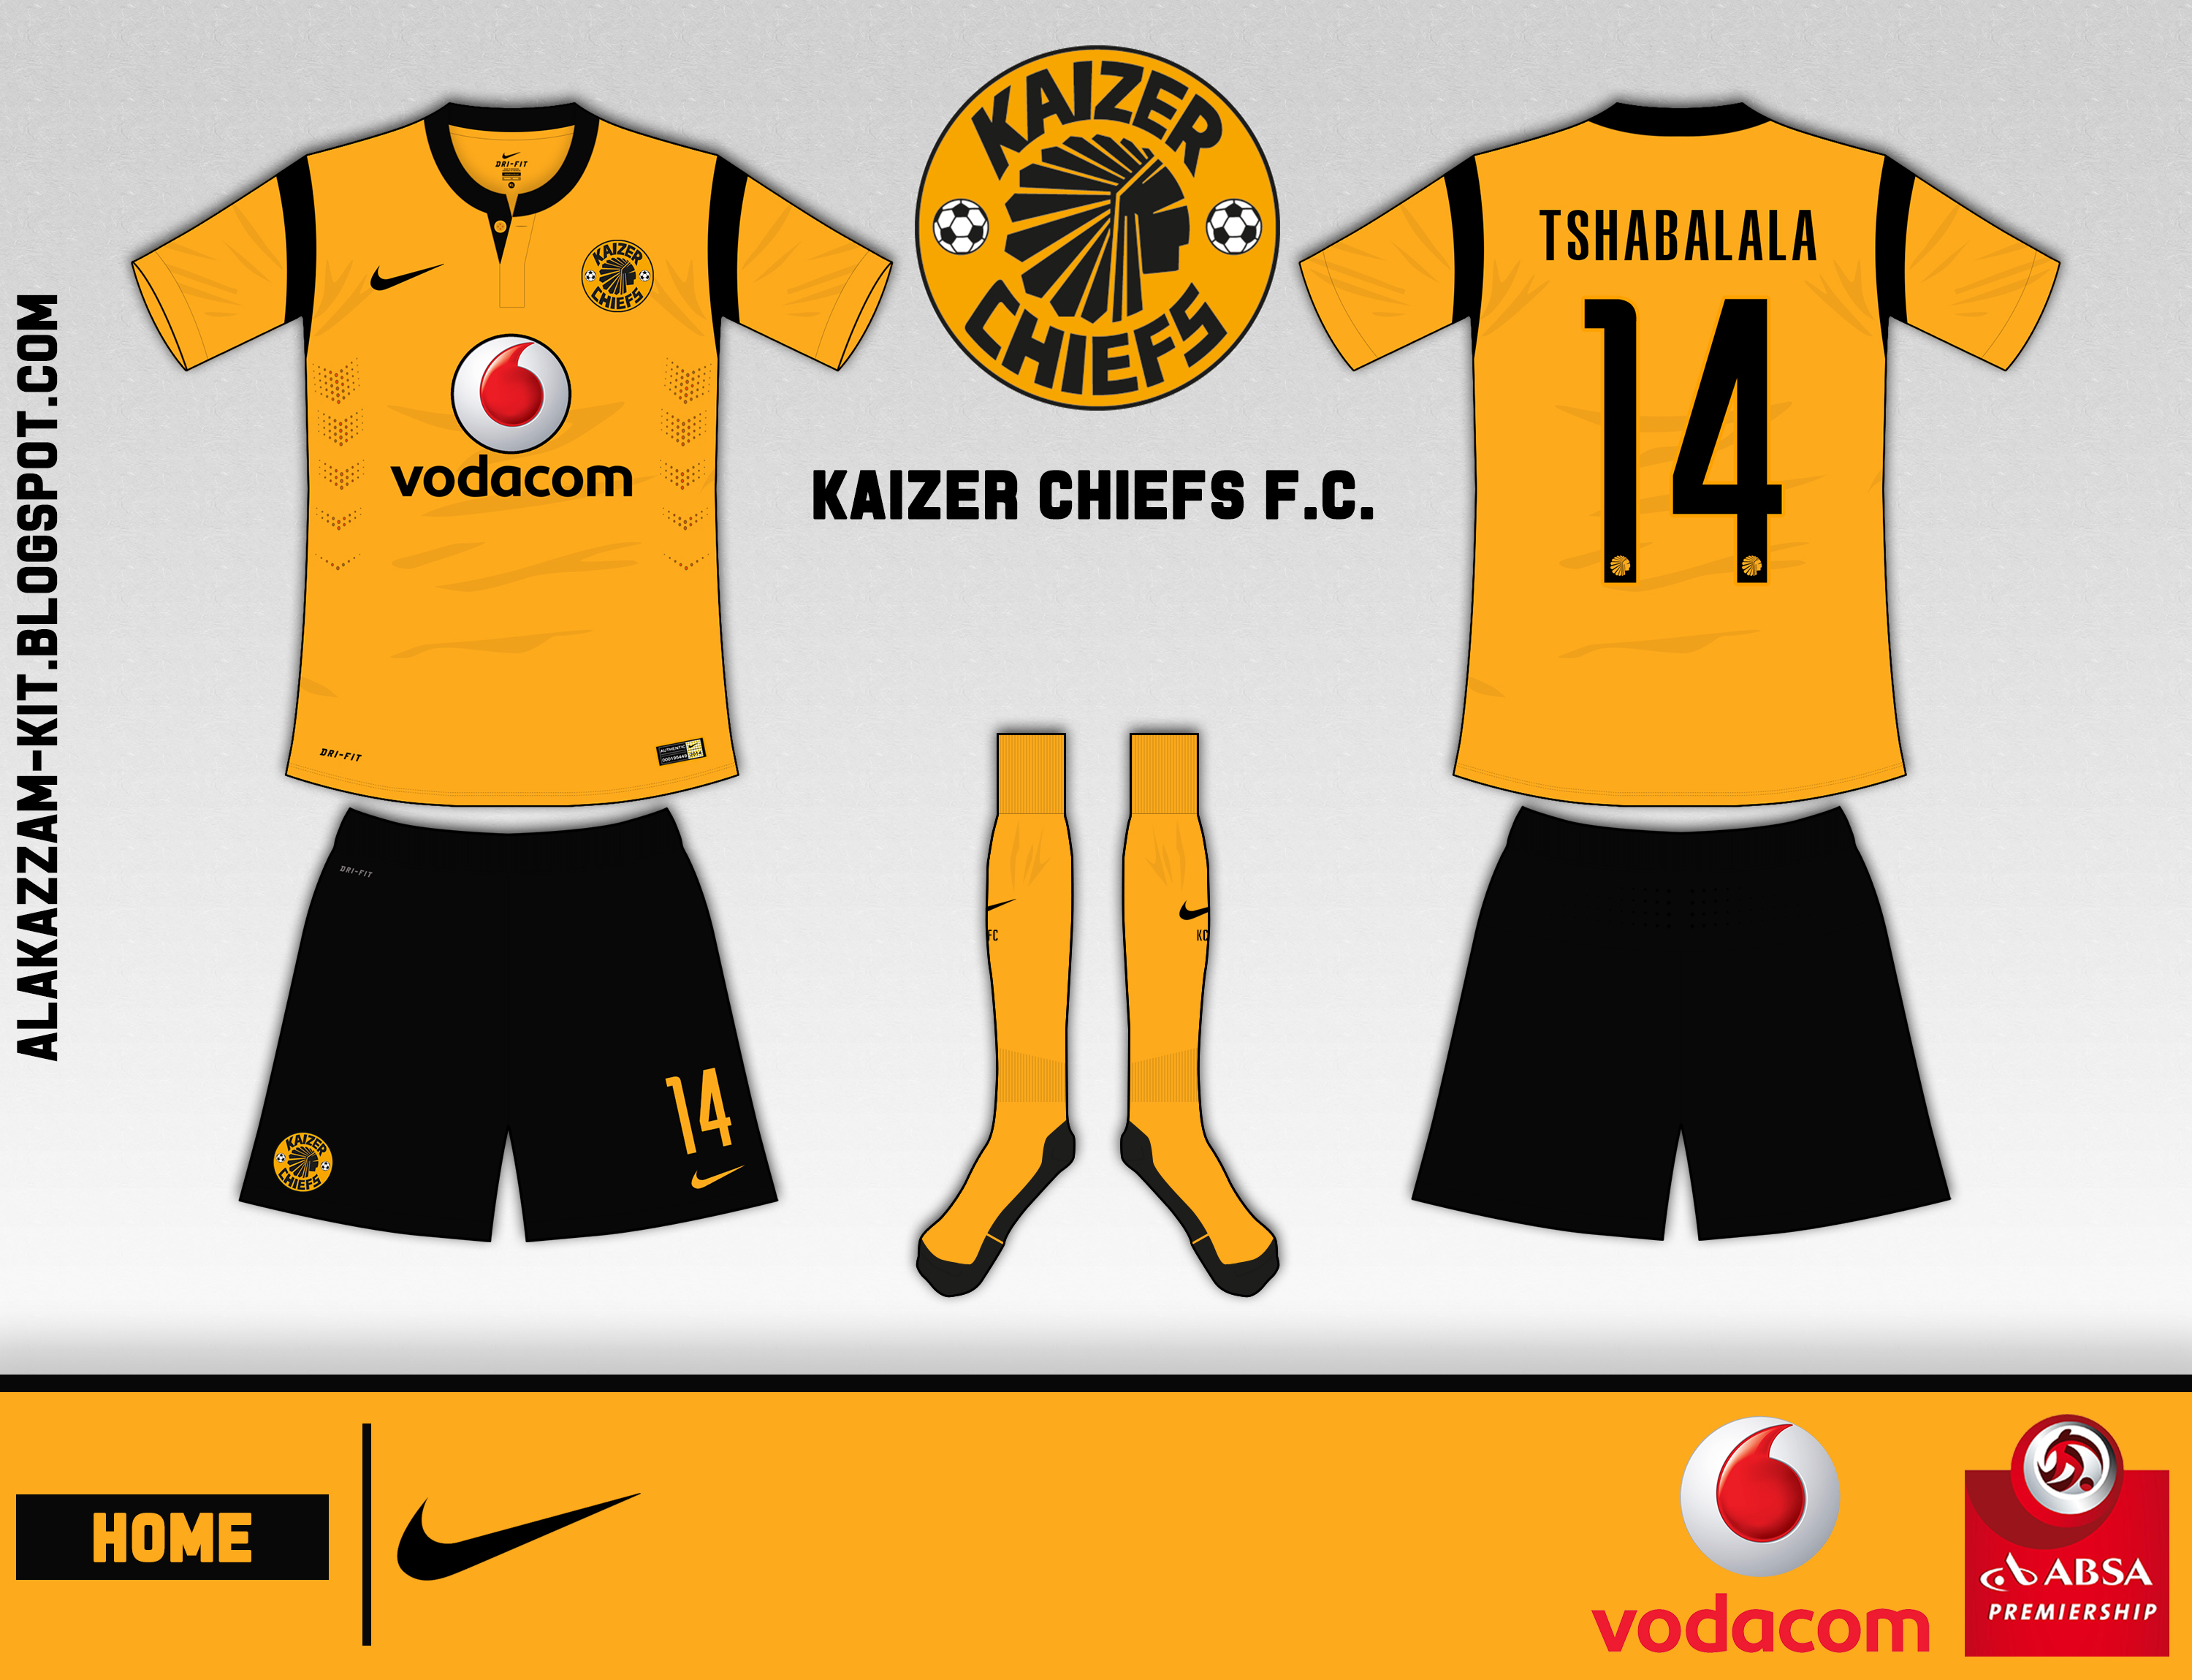 bbd89c85 Kaizer Chiefs F.C. Home